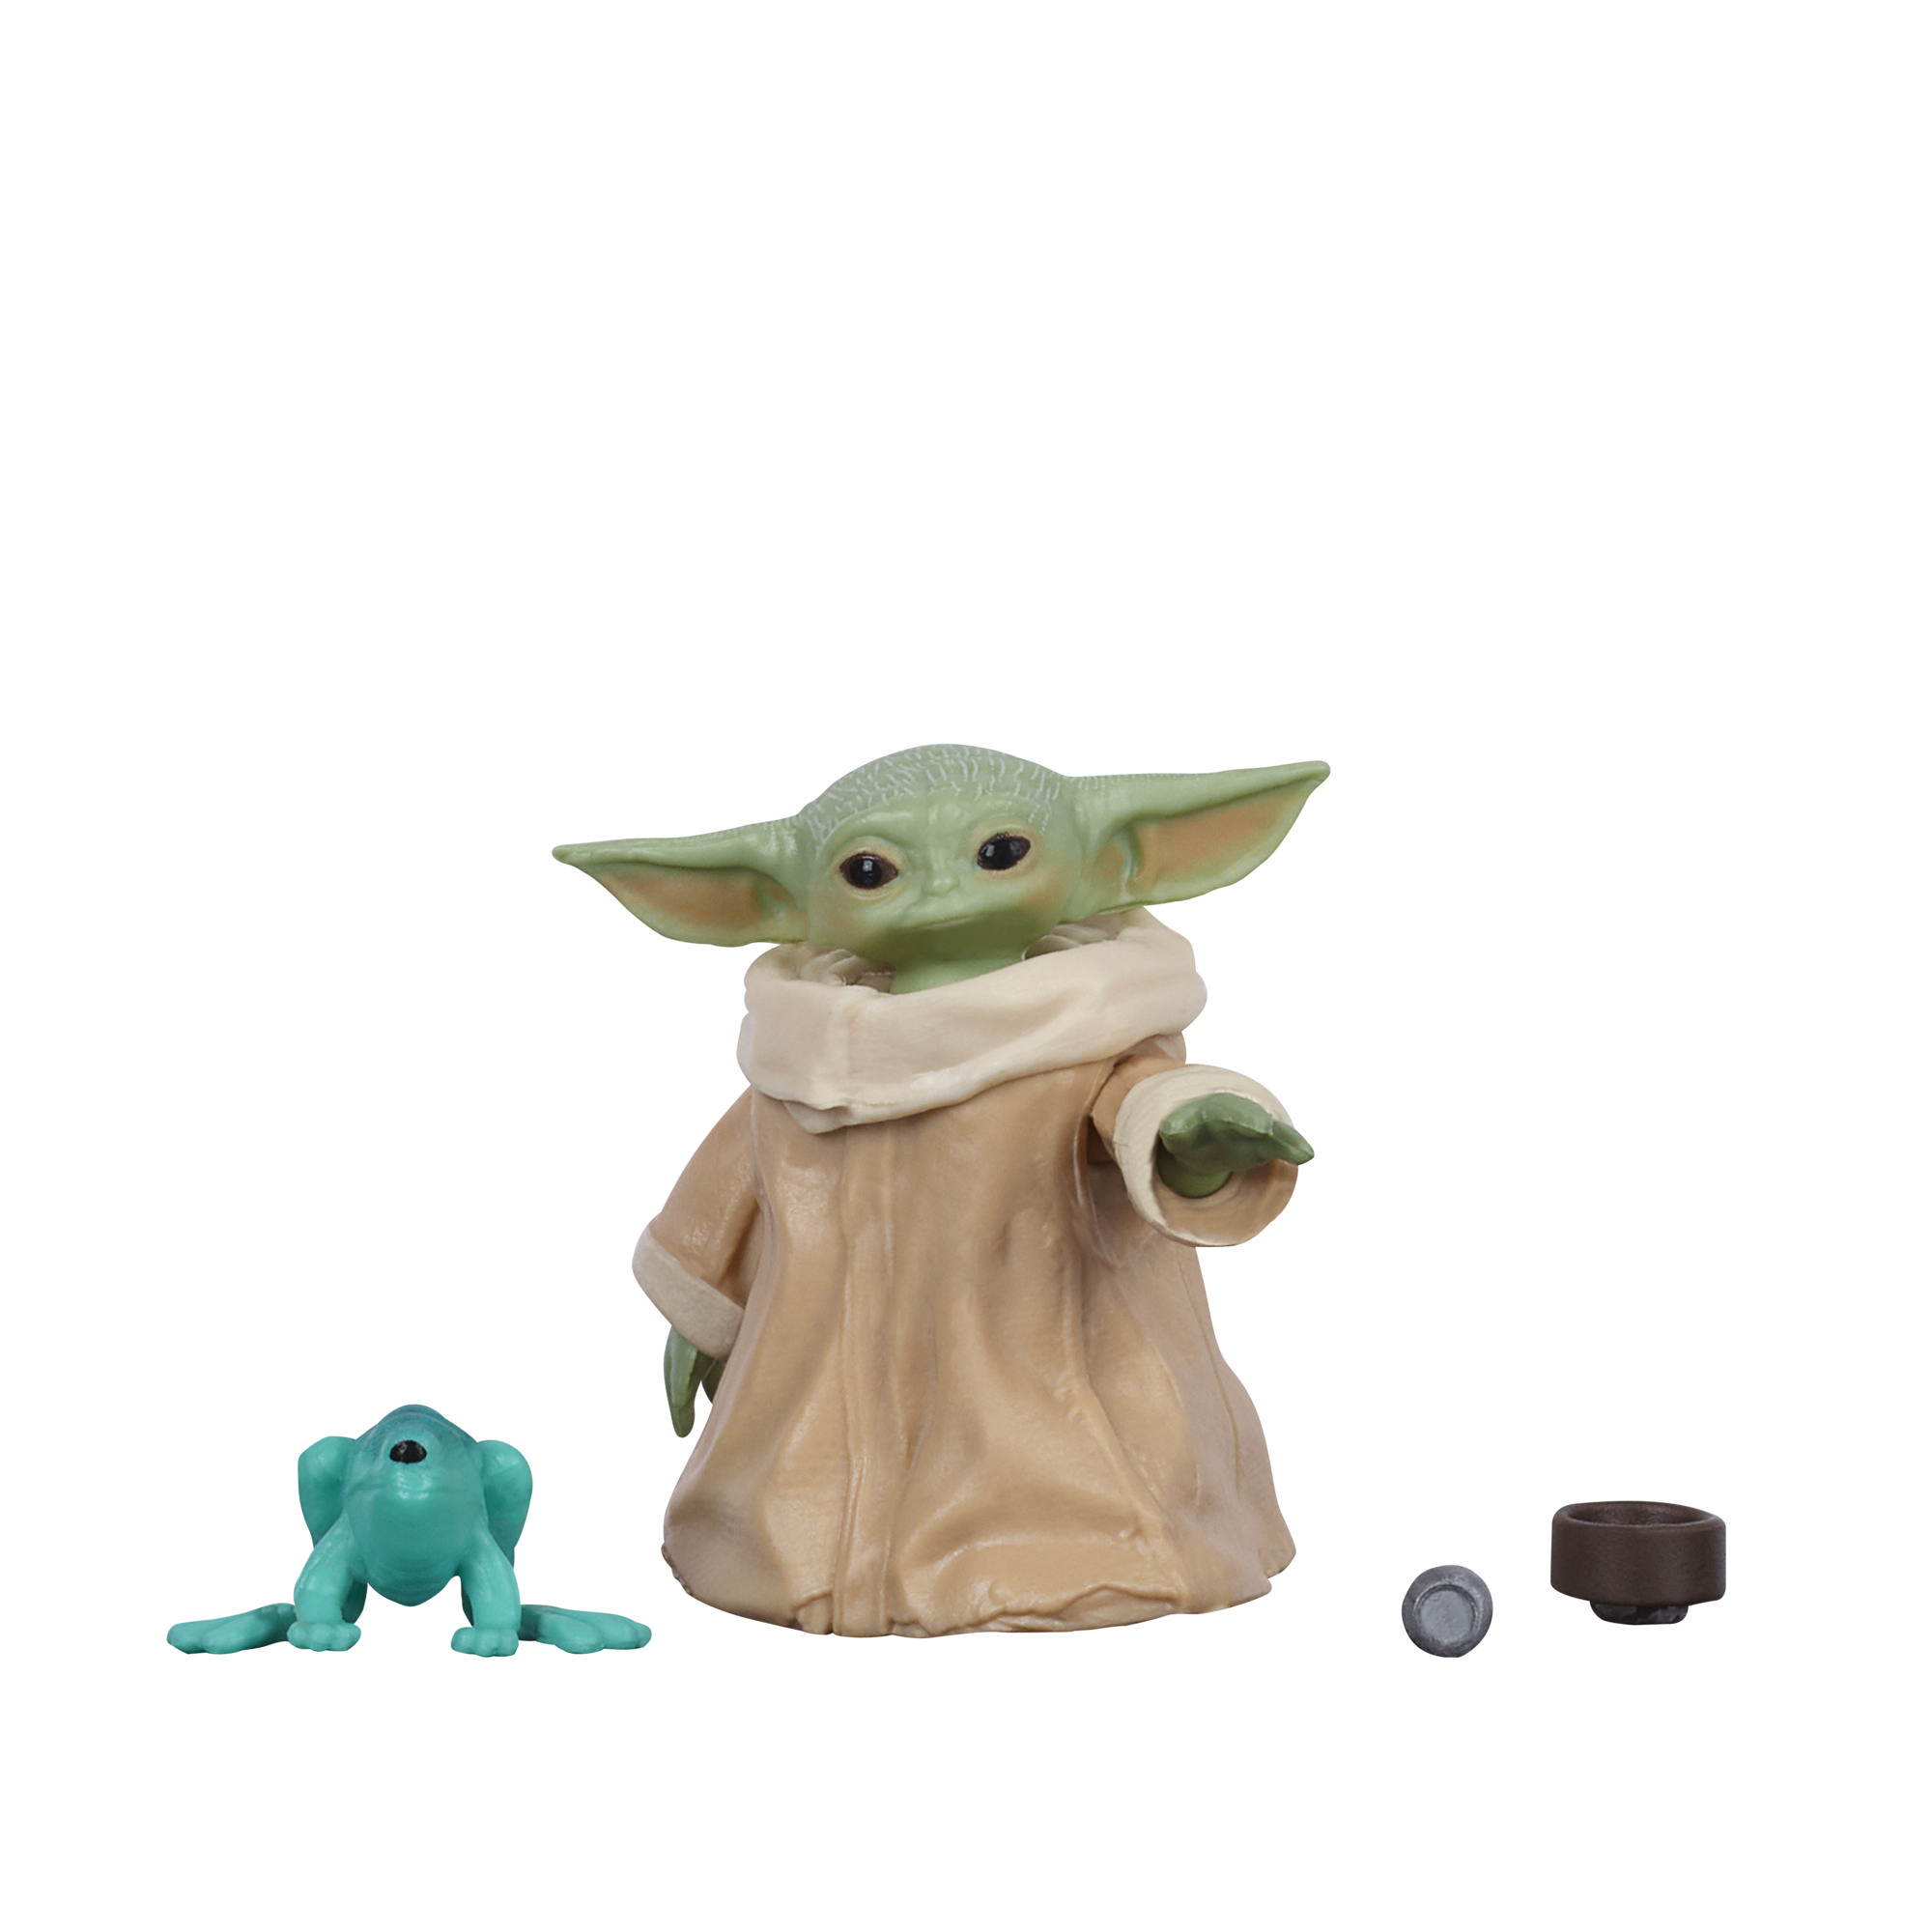 Star Wars The Black Series, figurine articulée The Child à collectionner